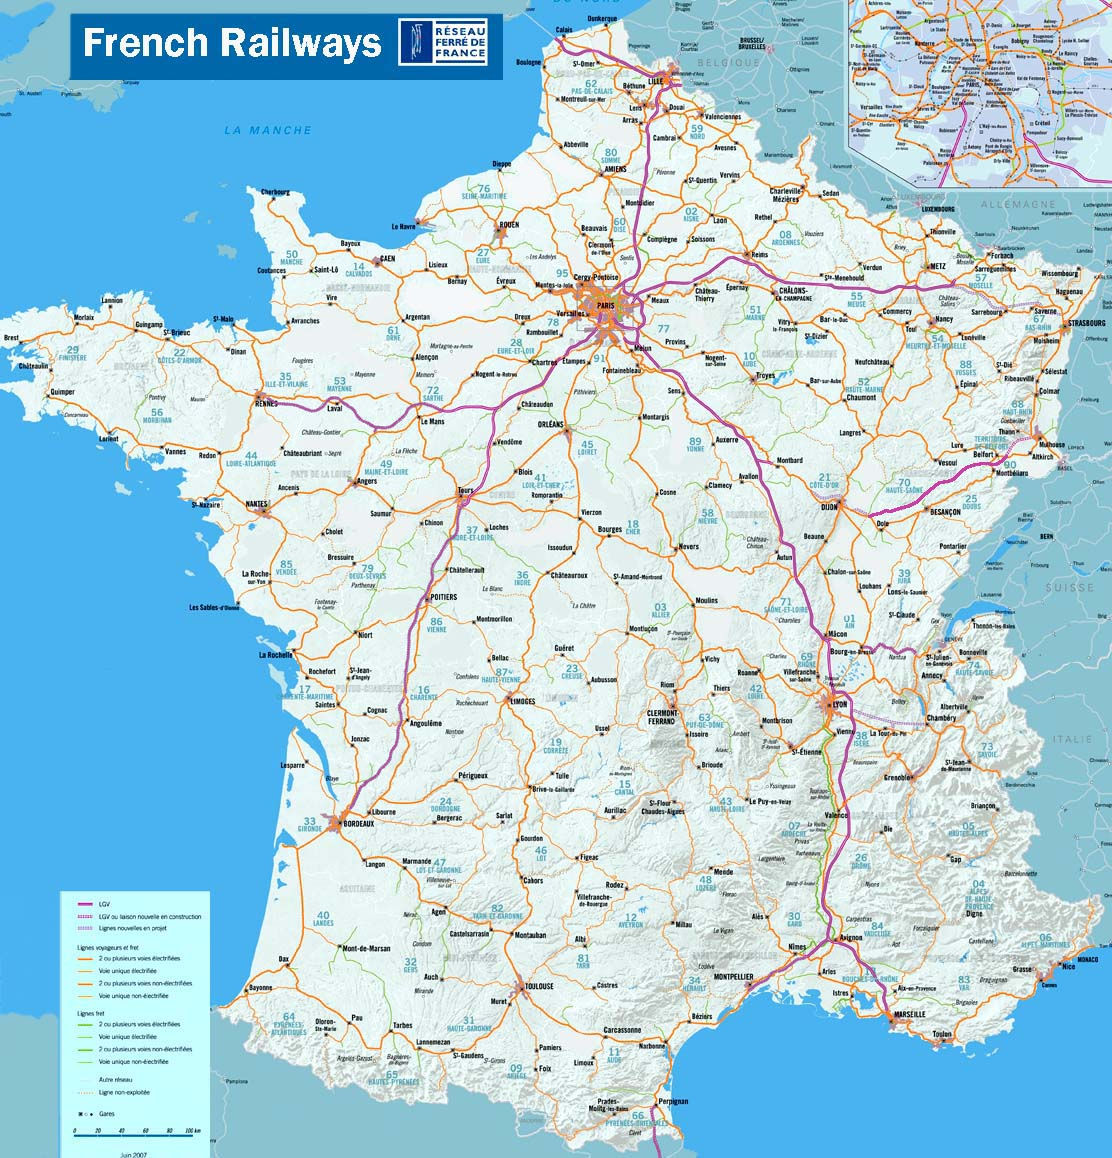 French railway network map - About-France.com travel